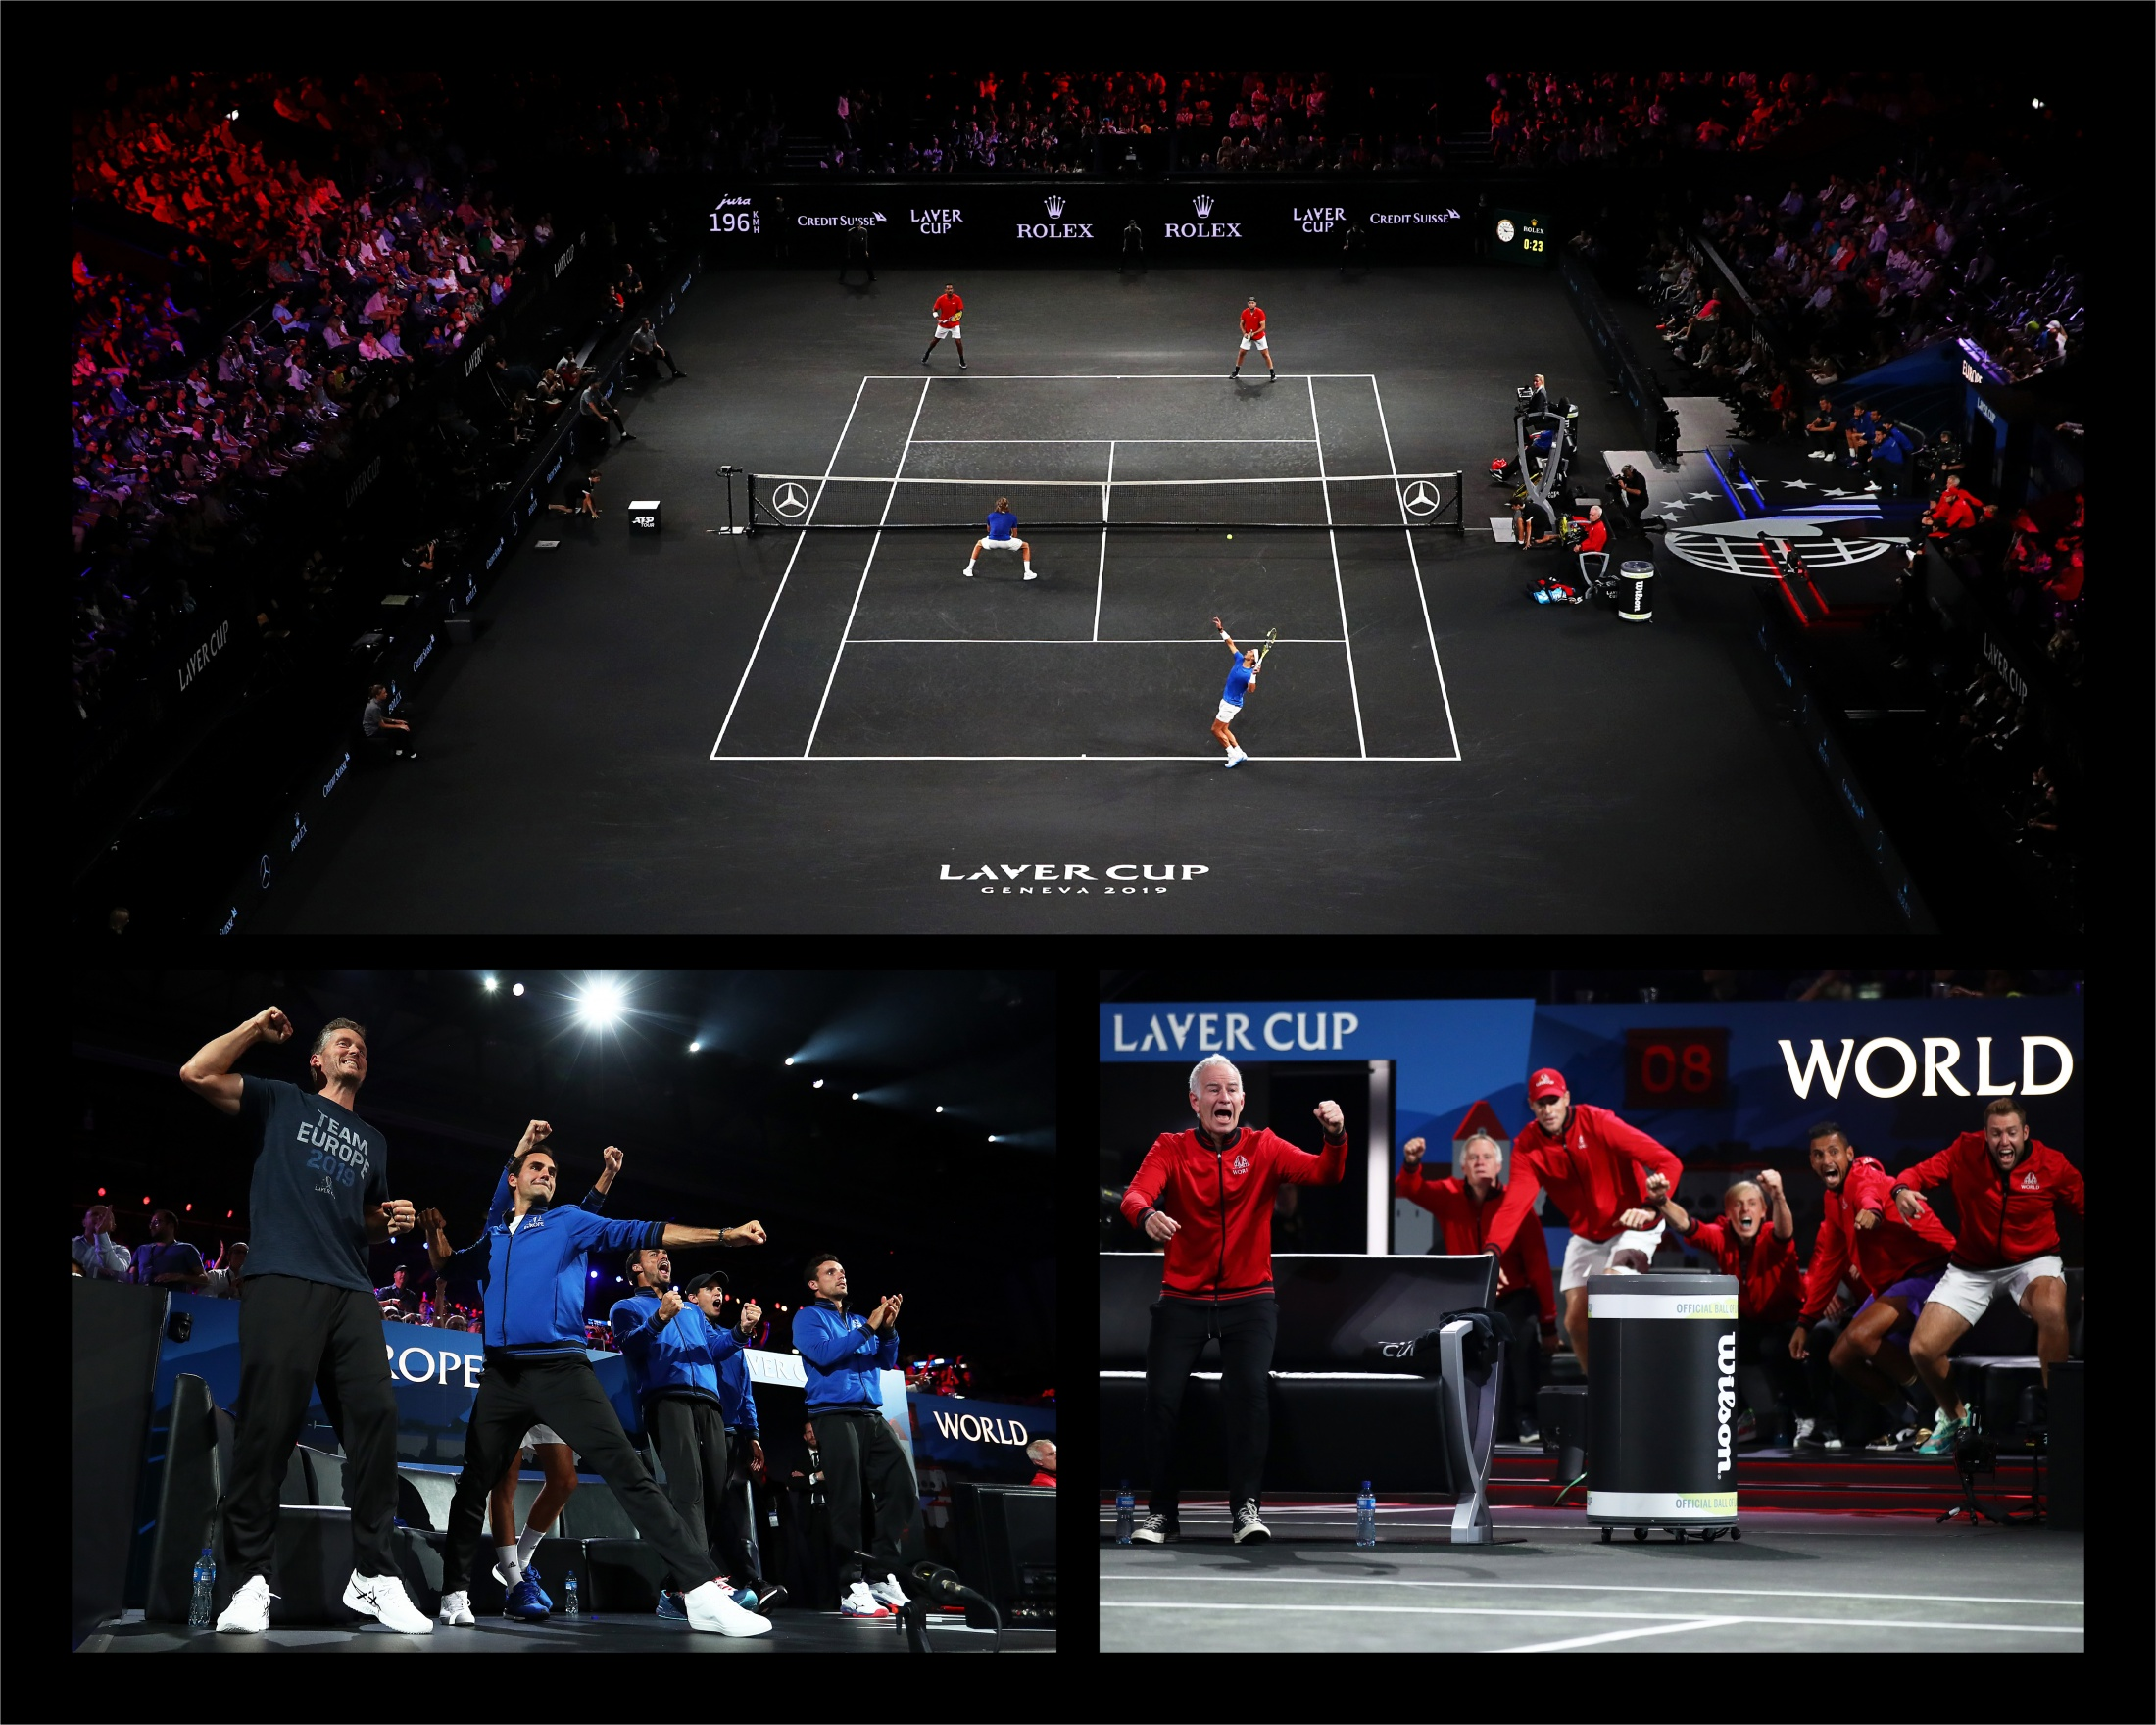 Thumbnail for Tennis venue in Switzerland